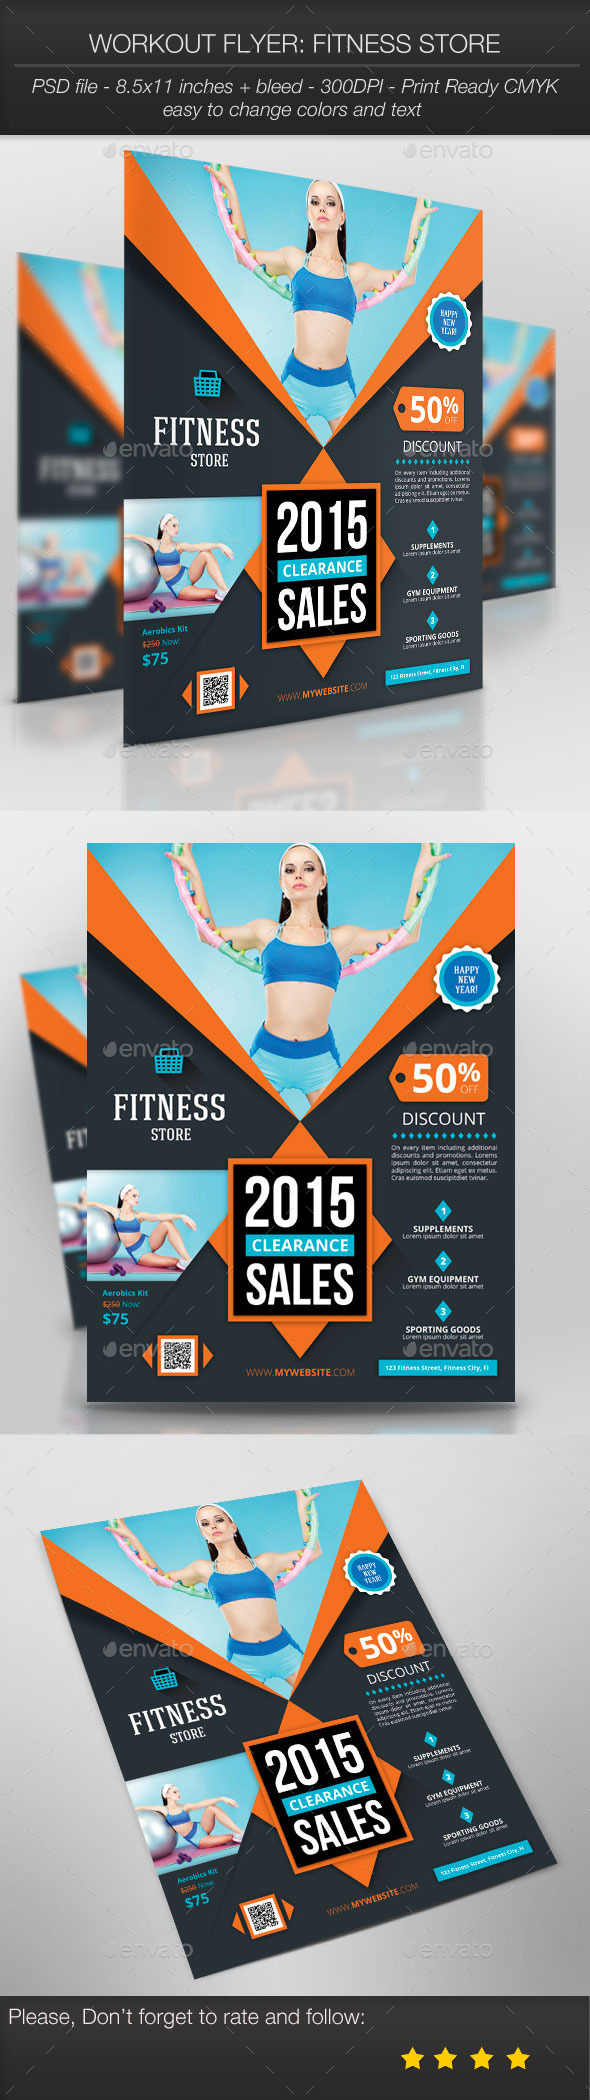 GraphicRiver Workout Flyer Fitness Store 9895429